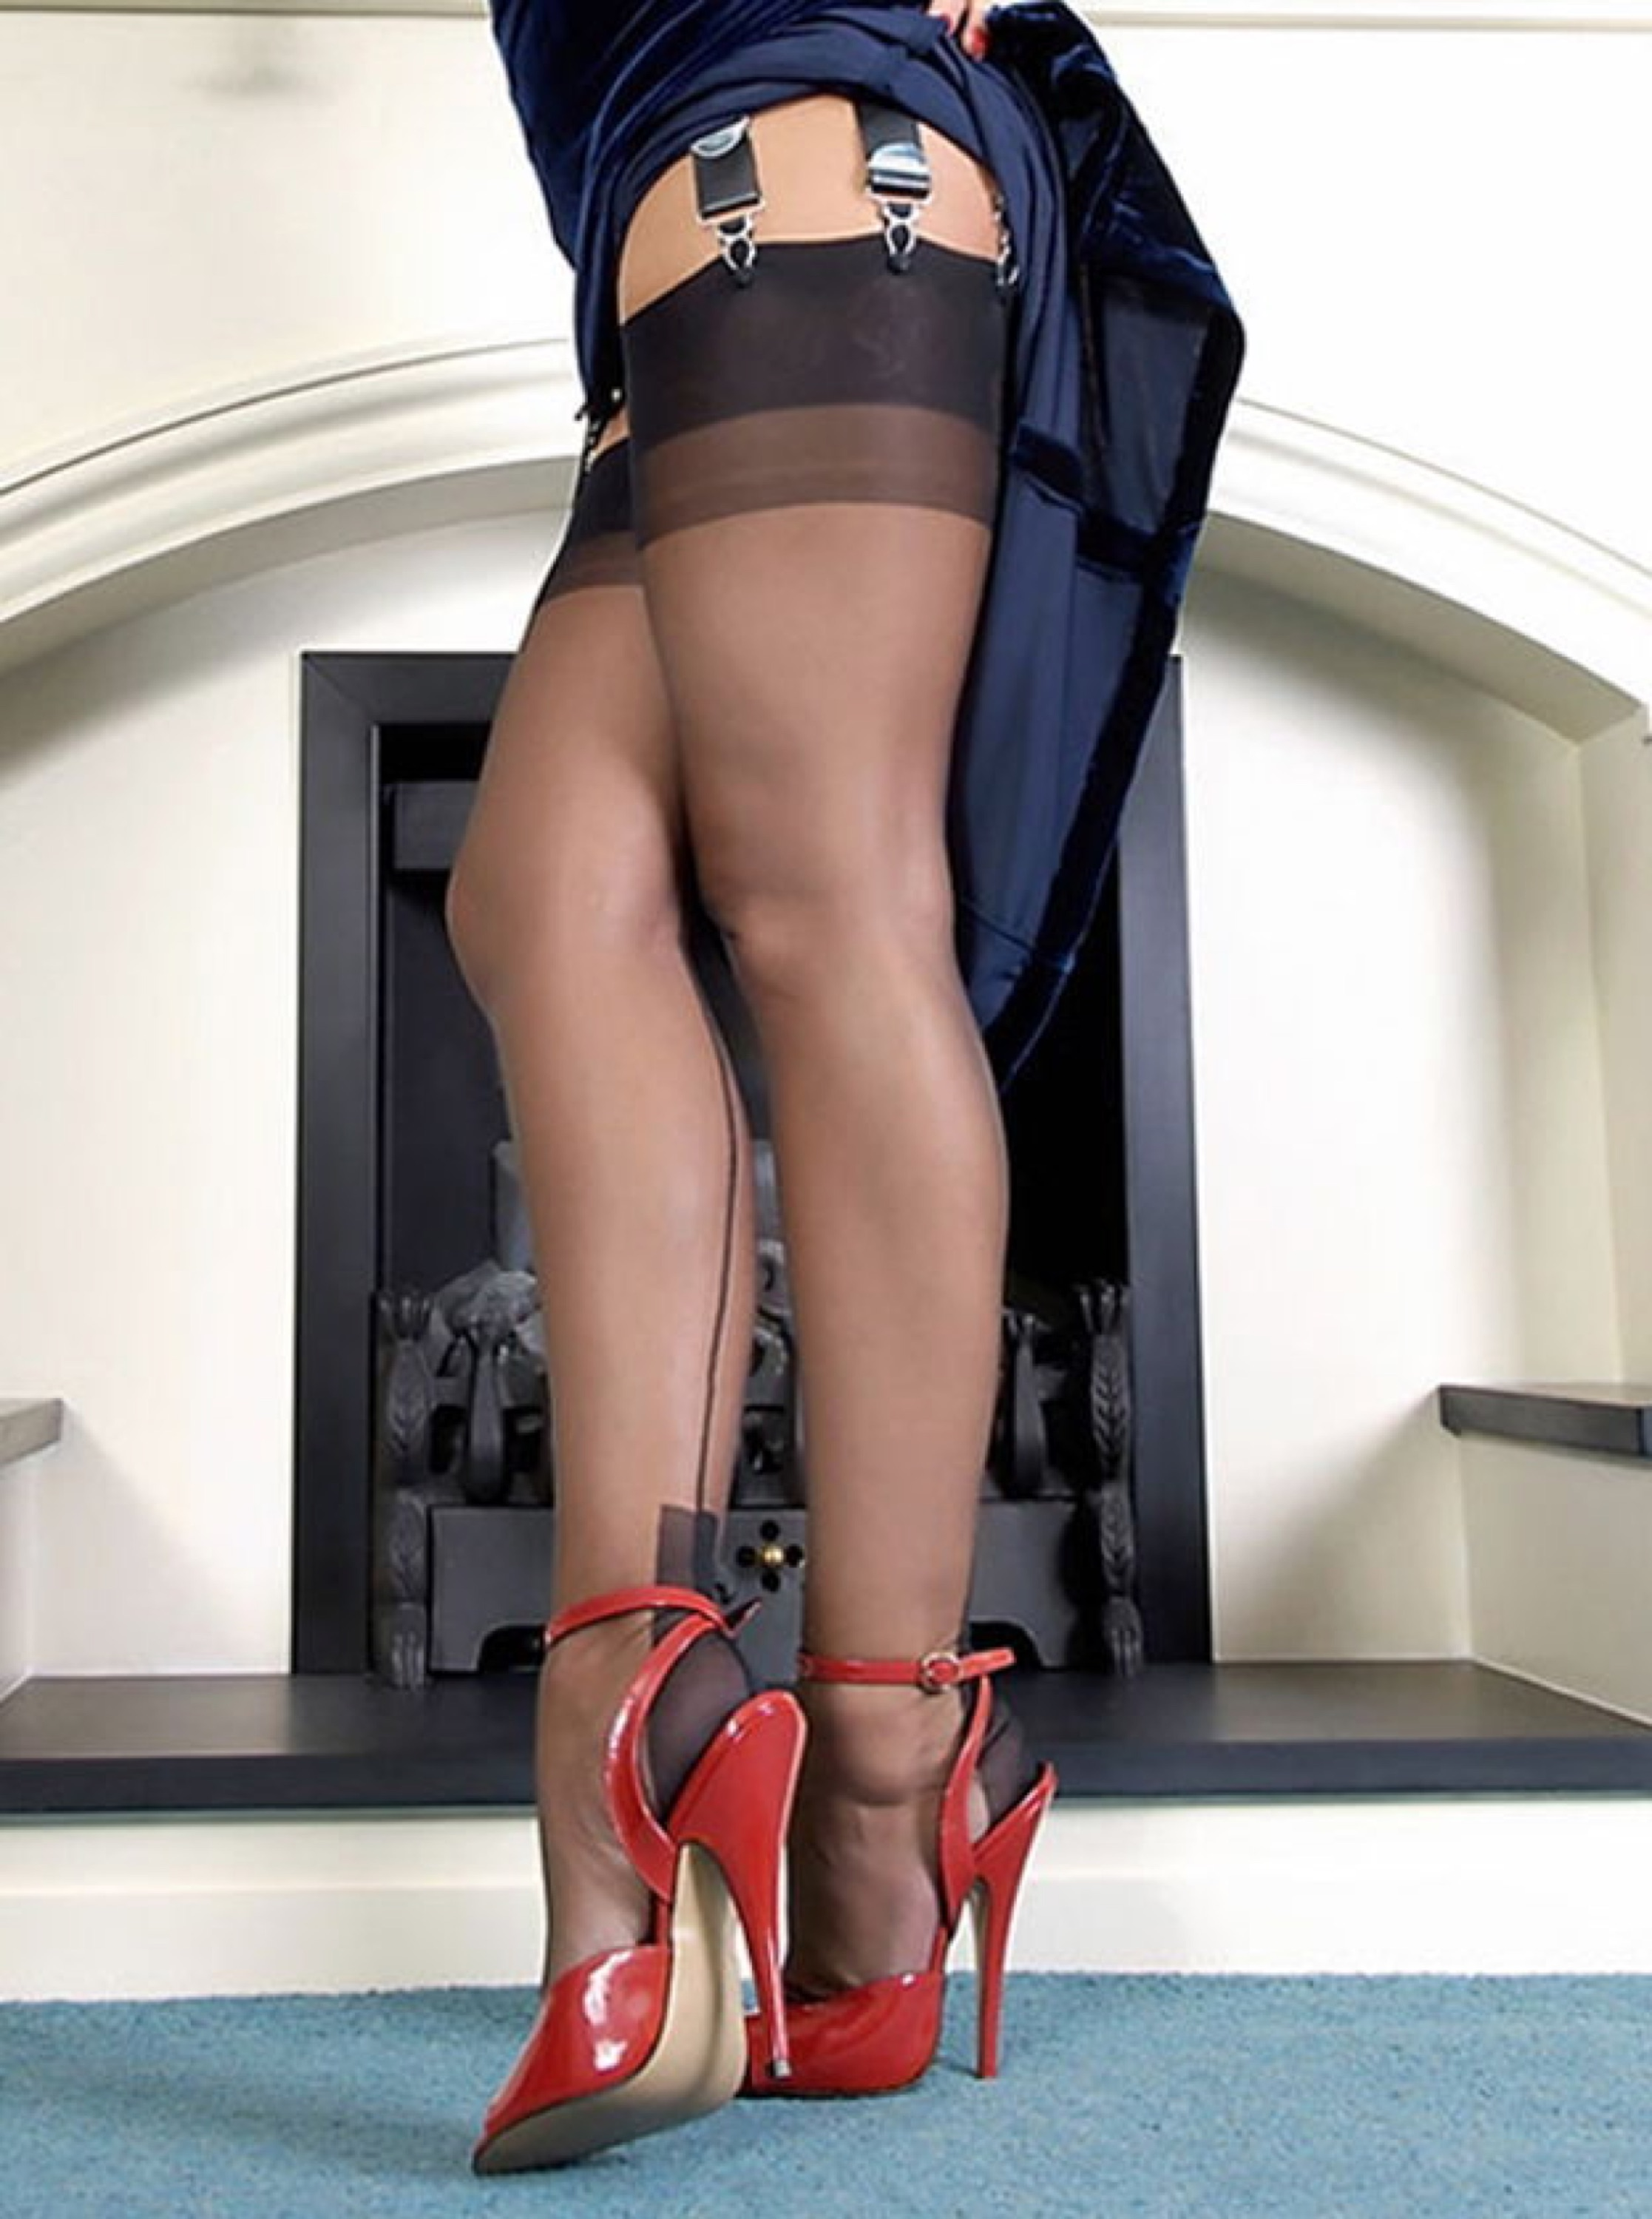 His pantyhose and heels